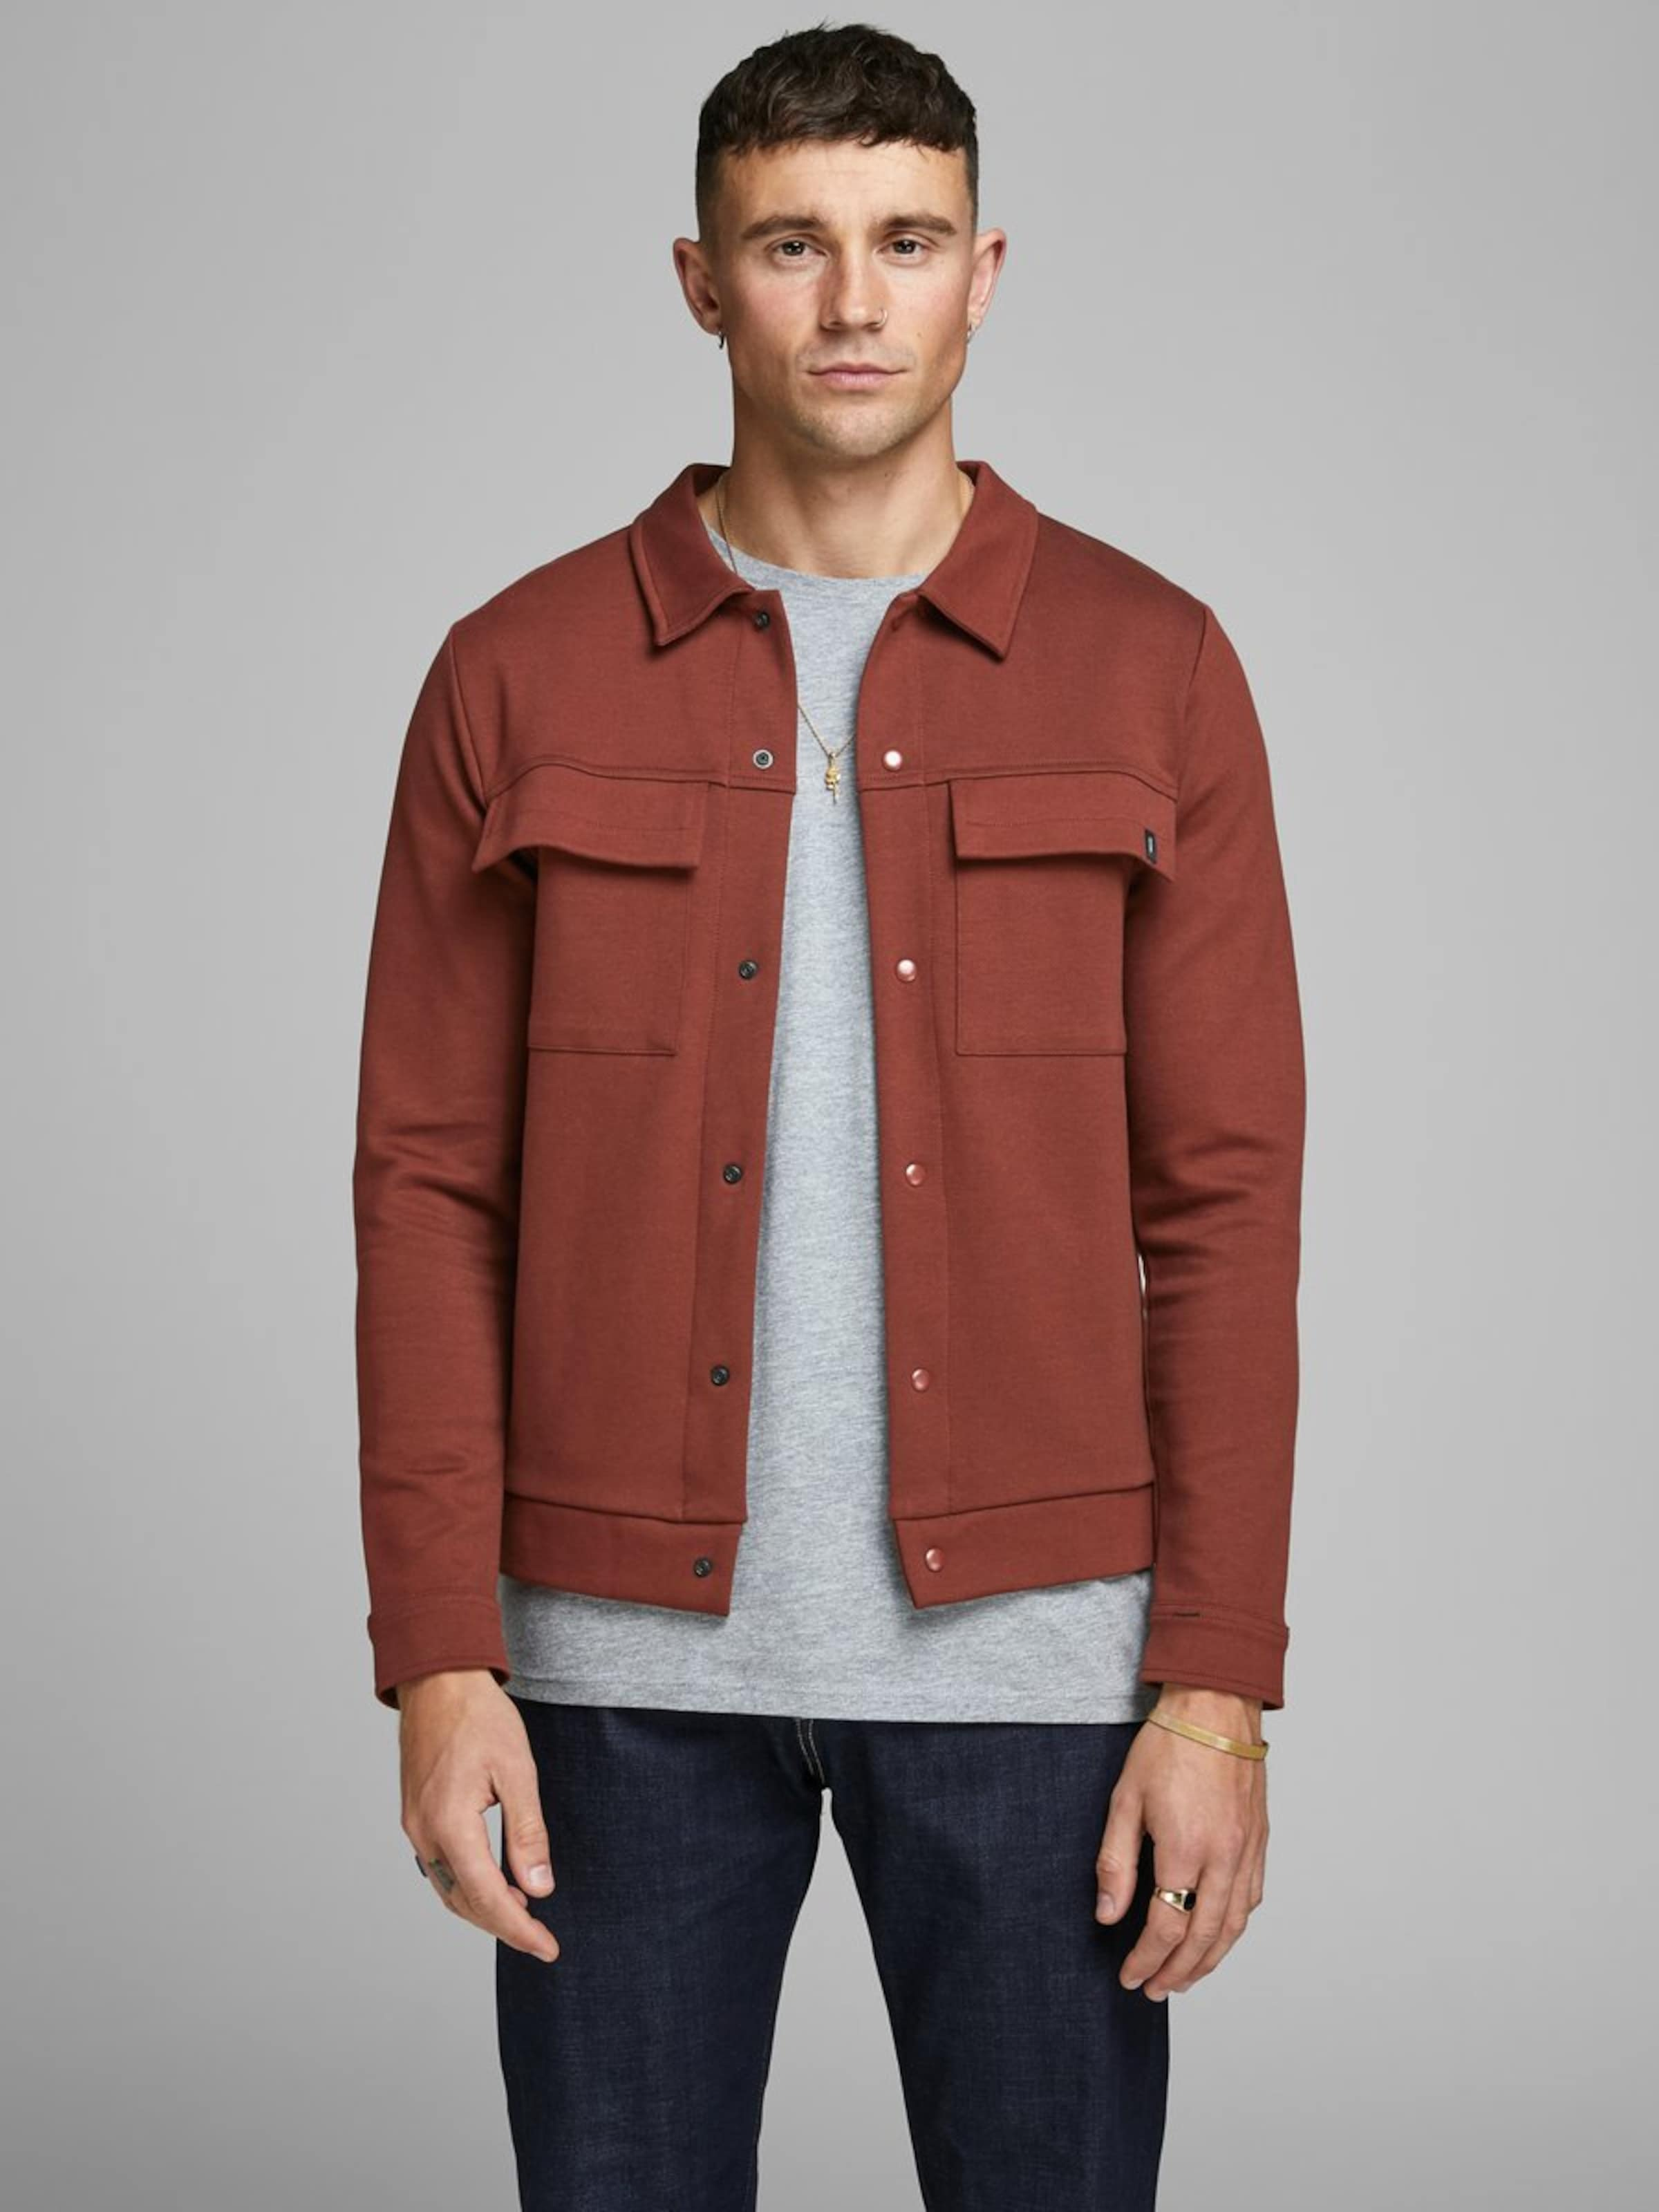 Rostbraun Jackamp; Sweat Jones Jacke In OXikZuTP